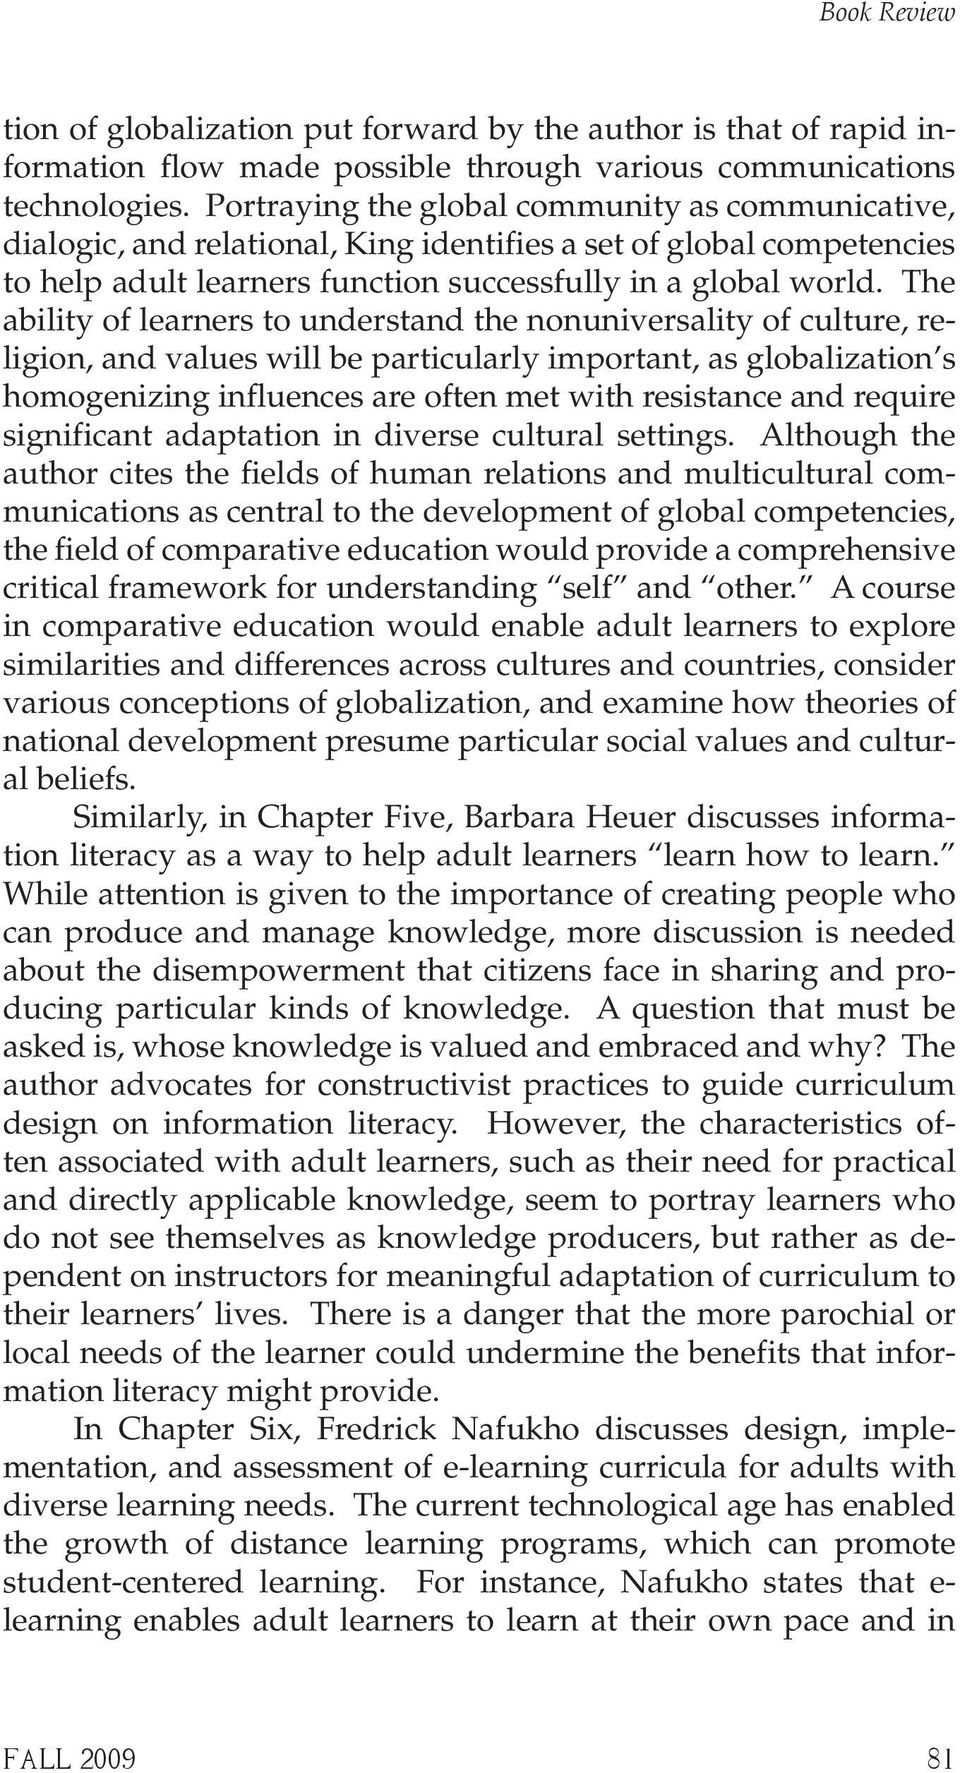 The ability of learners to understand the nonuniversality of culture, religion, and values will be particularly important, as globalization s homogenizing influences are often met with resistance and